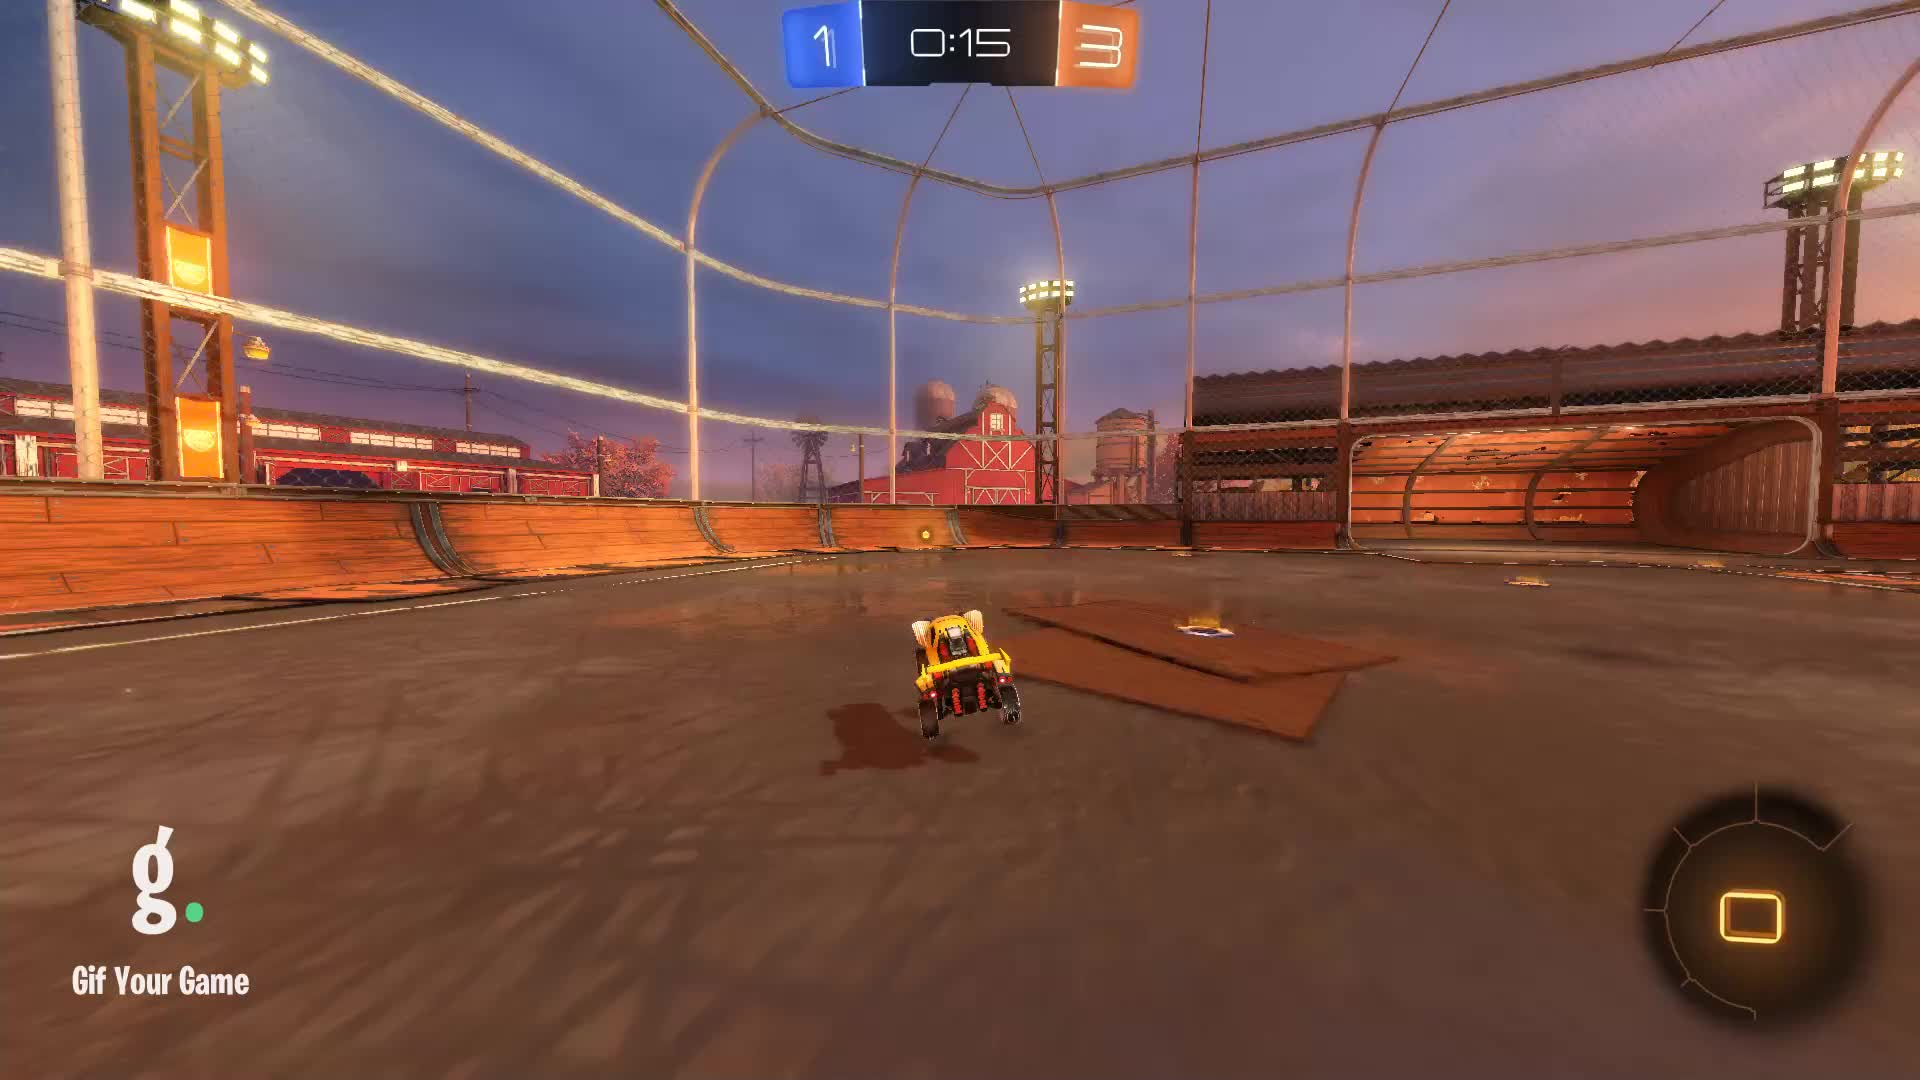 Gif Your Game, GifYourGame, Goal, Rocket League, RocketLeague, manlet scum, Goal 5: manlet scum GIFs